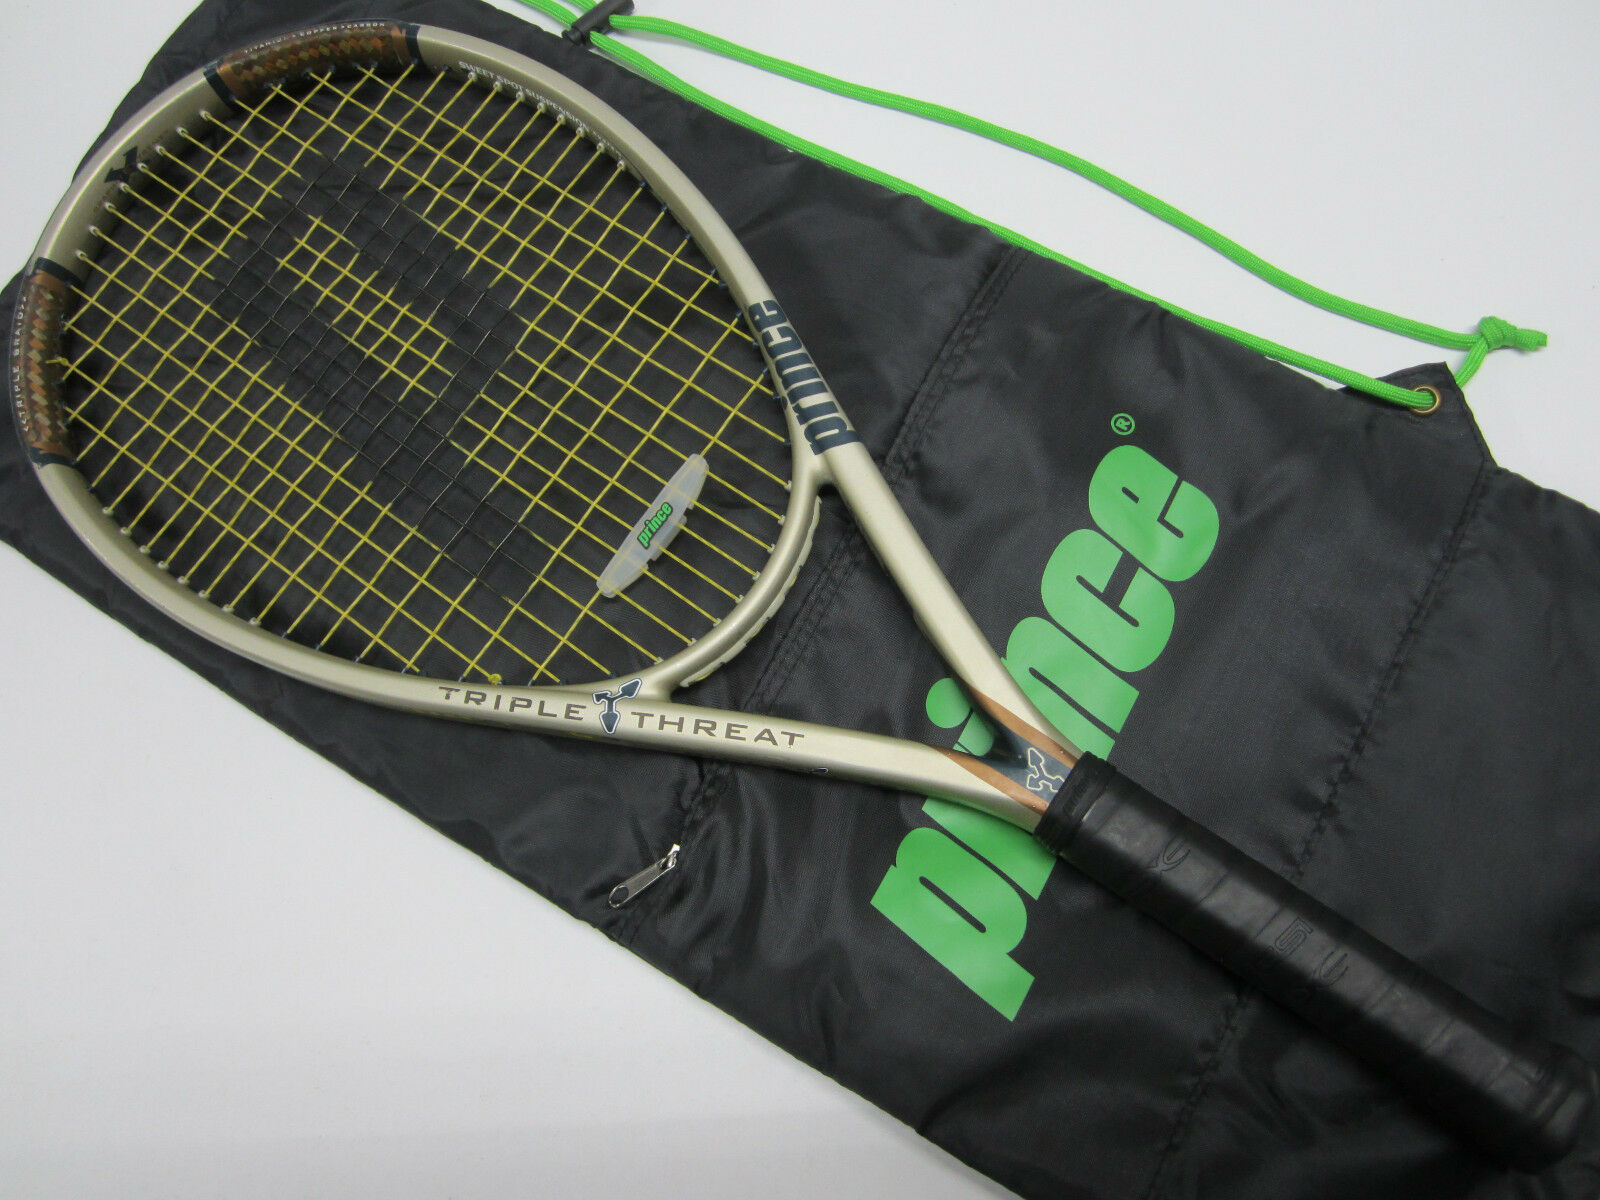 PRINCE TRIPLE THREAT TT RIP RIP TT 115 RACQUET (4 1/2) NEW STRINGS/GRIP!! befdc6